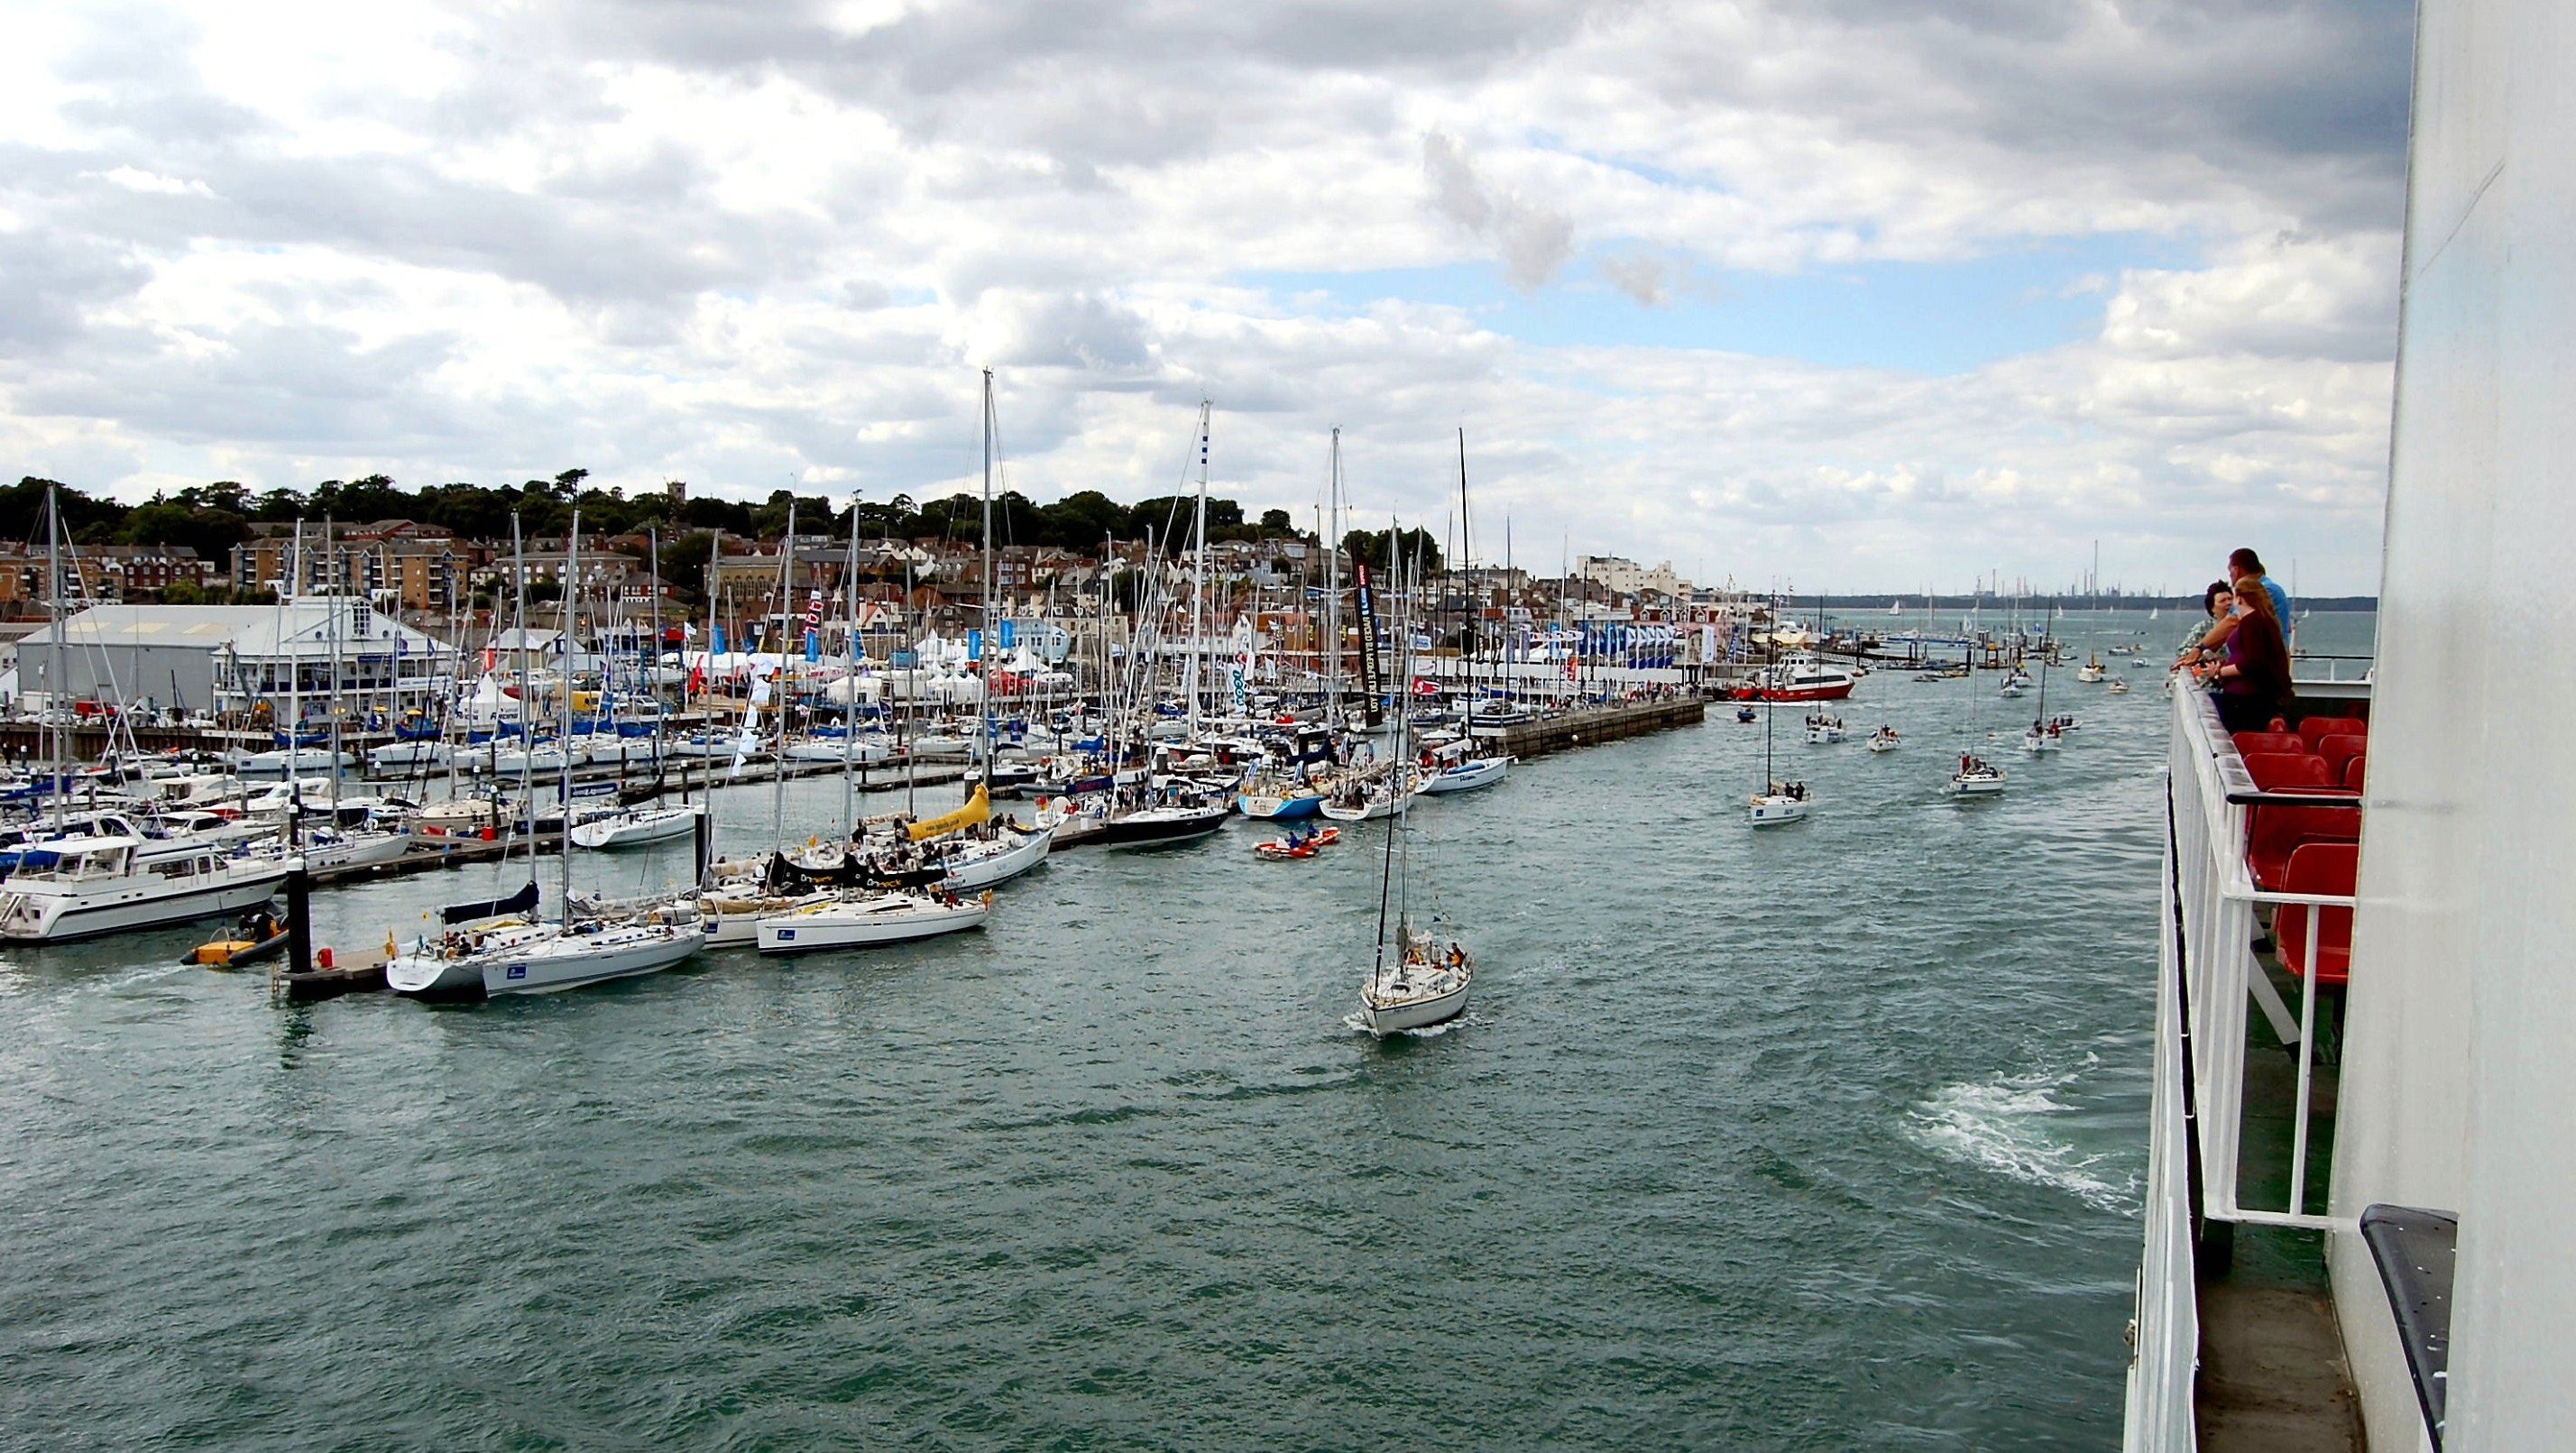 Isle of Wight ferry entering Cowes